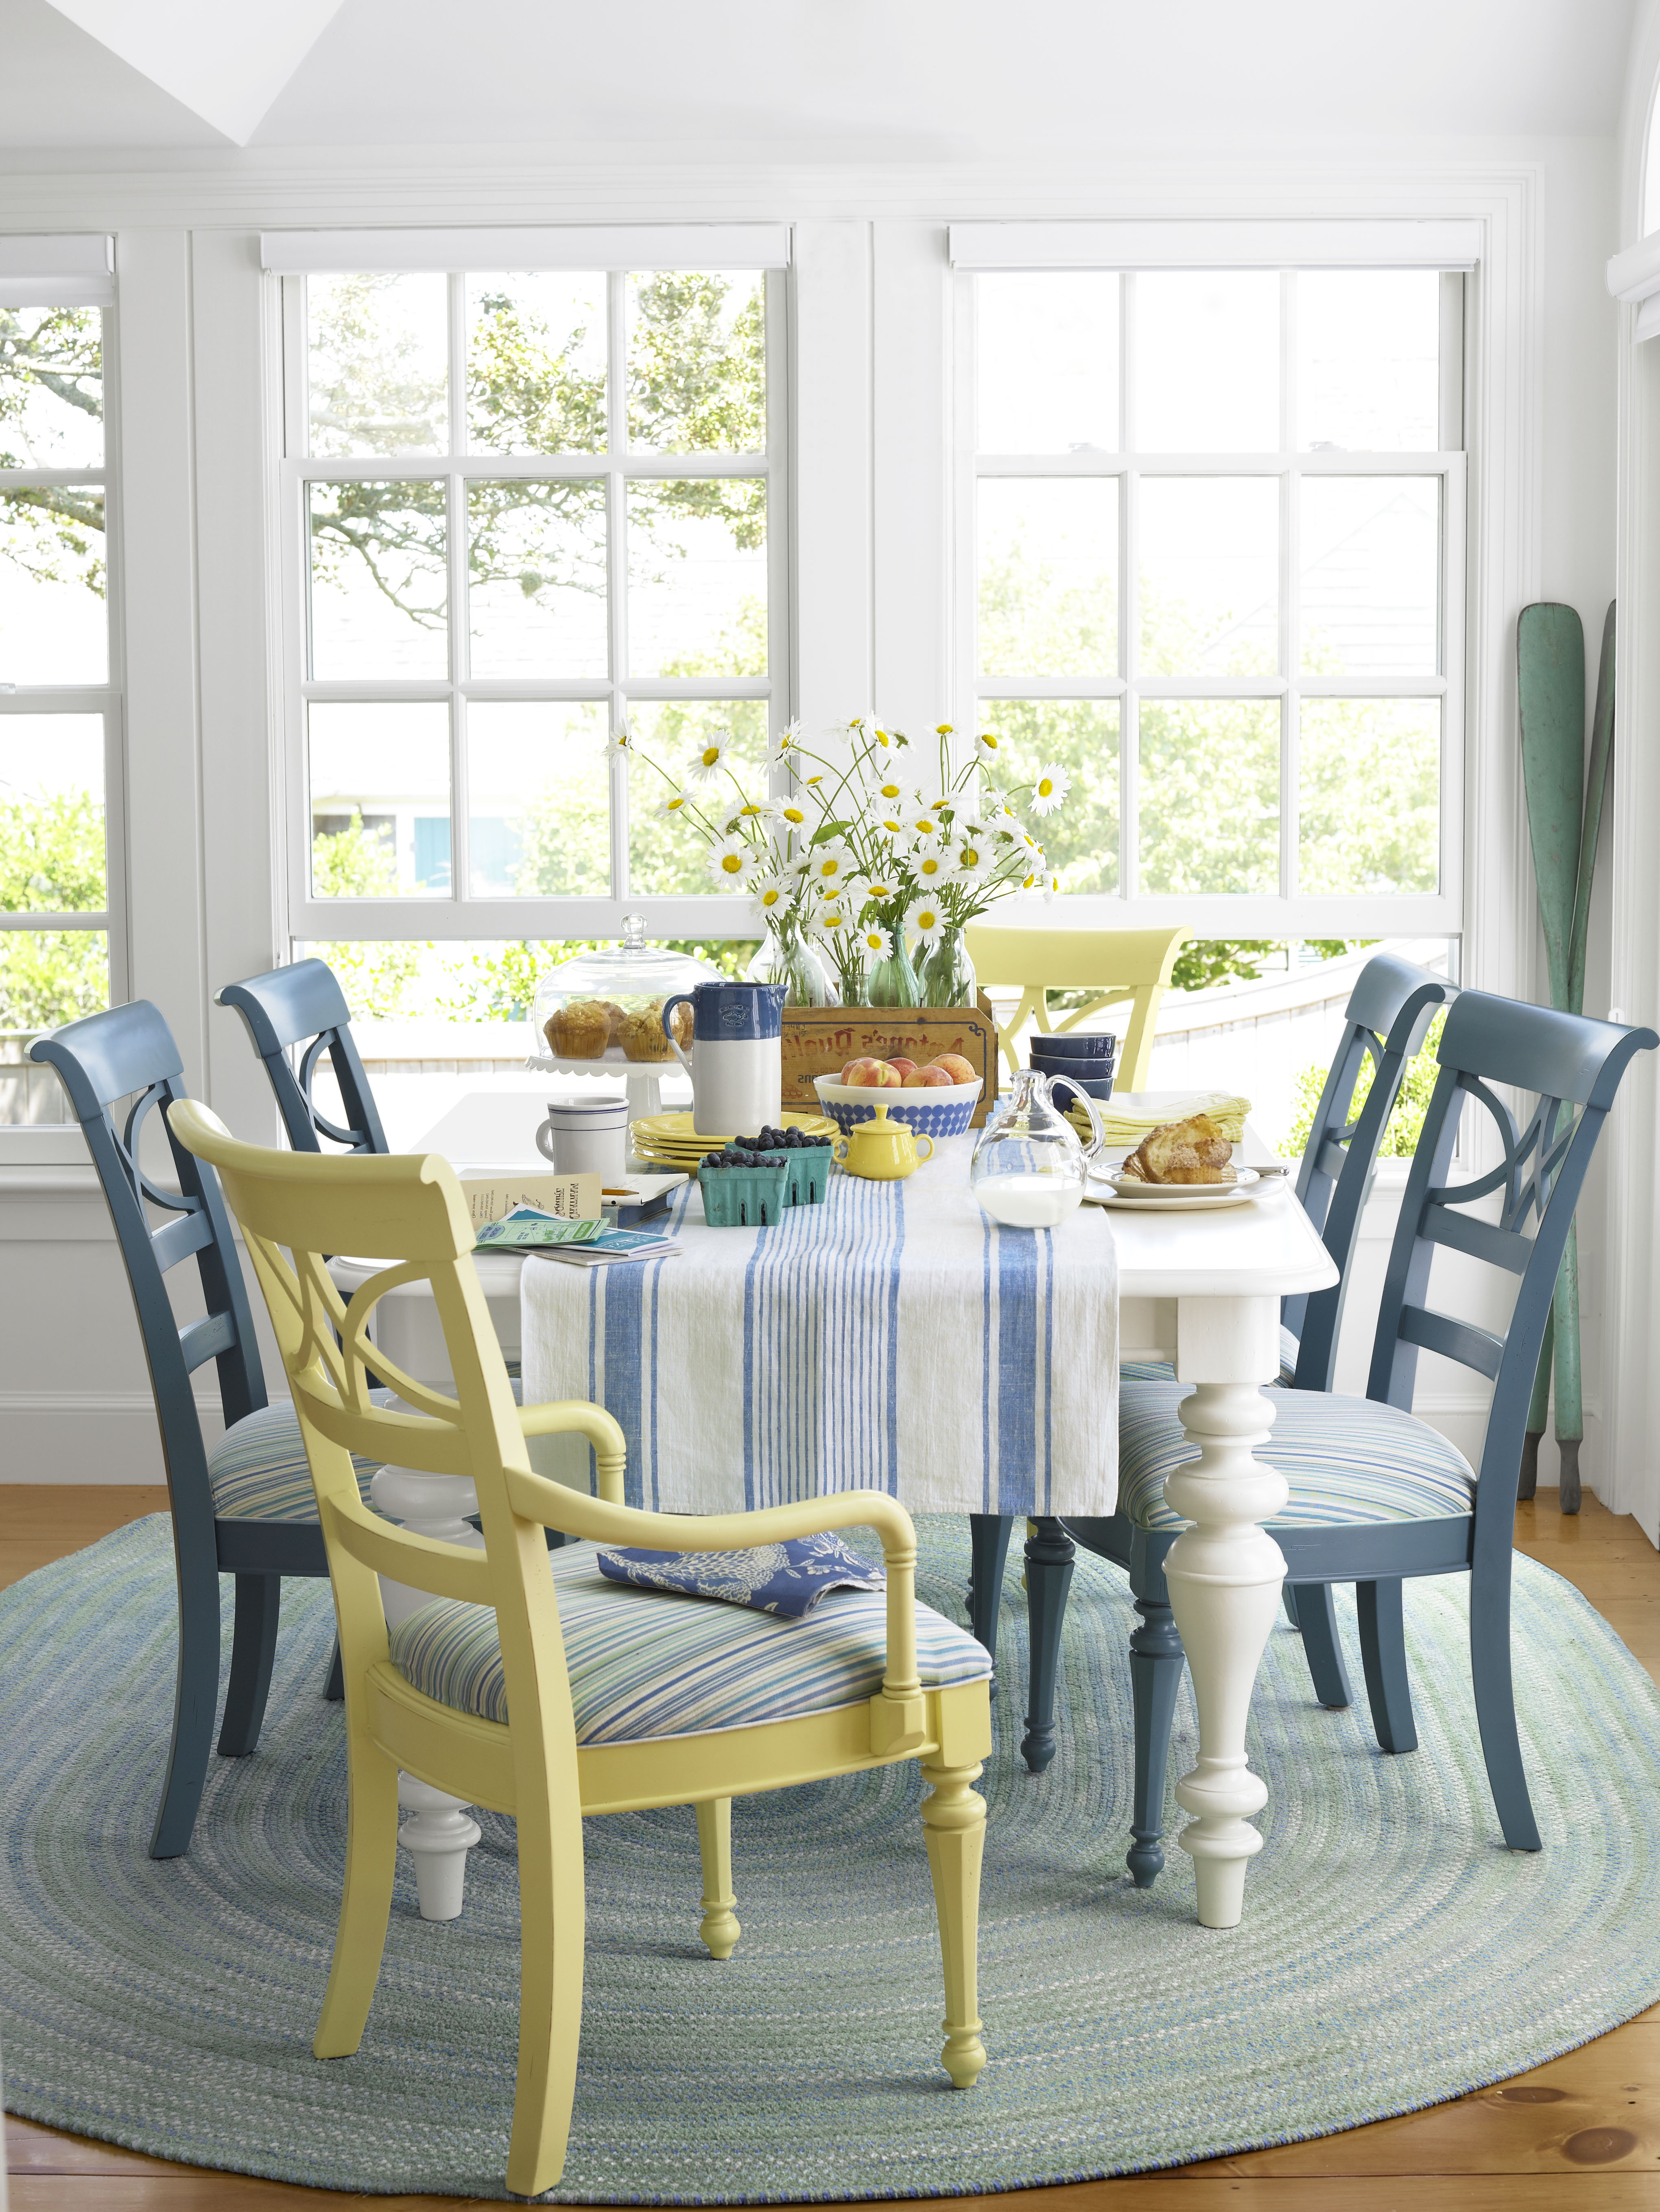 Cozy Braided Rug For Coastal Dining Room Interior (View 10 of 15)